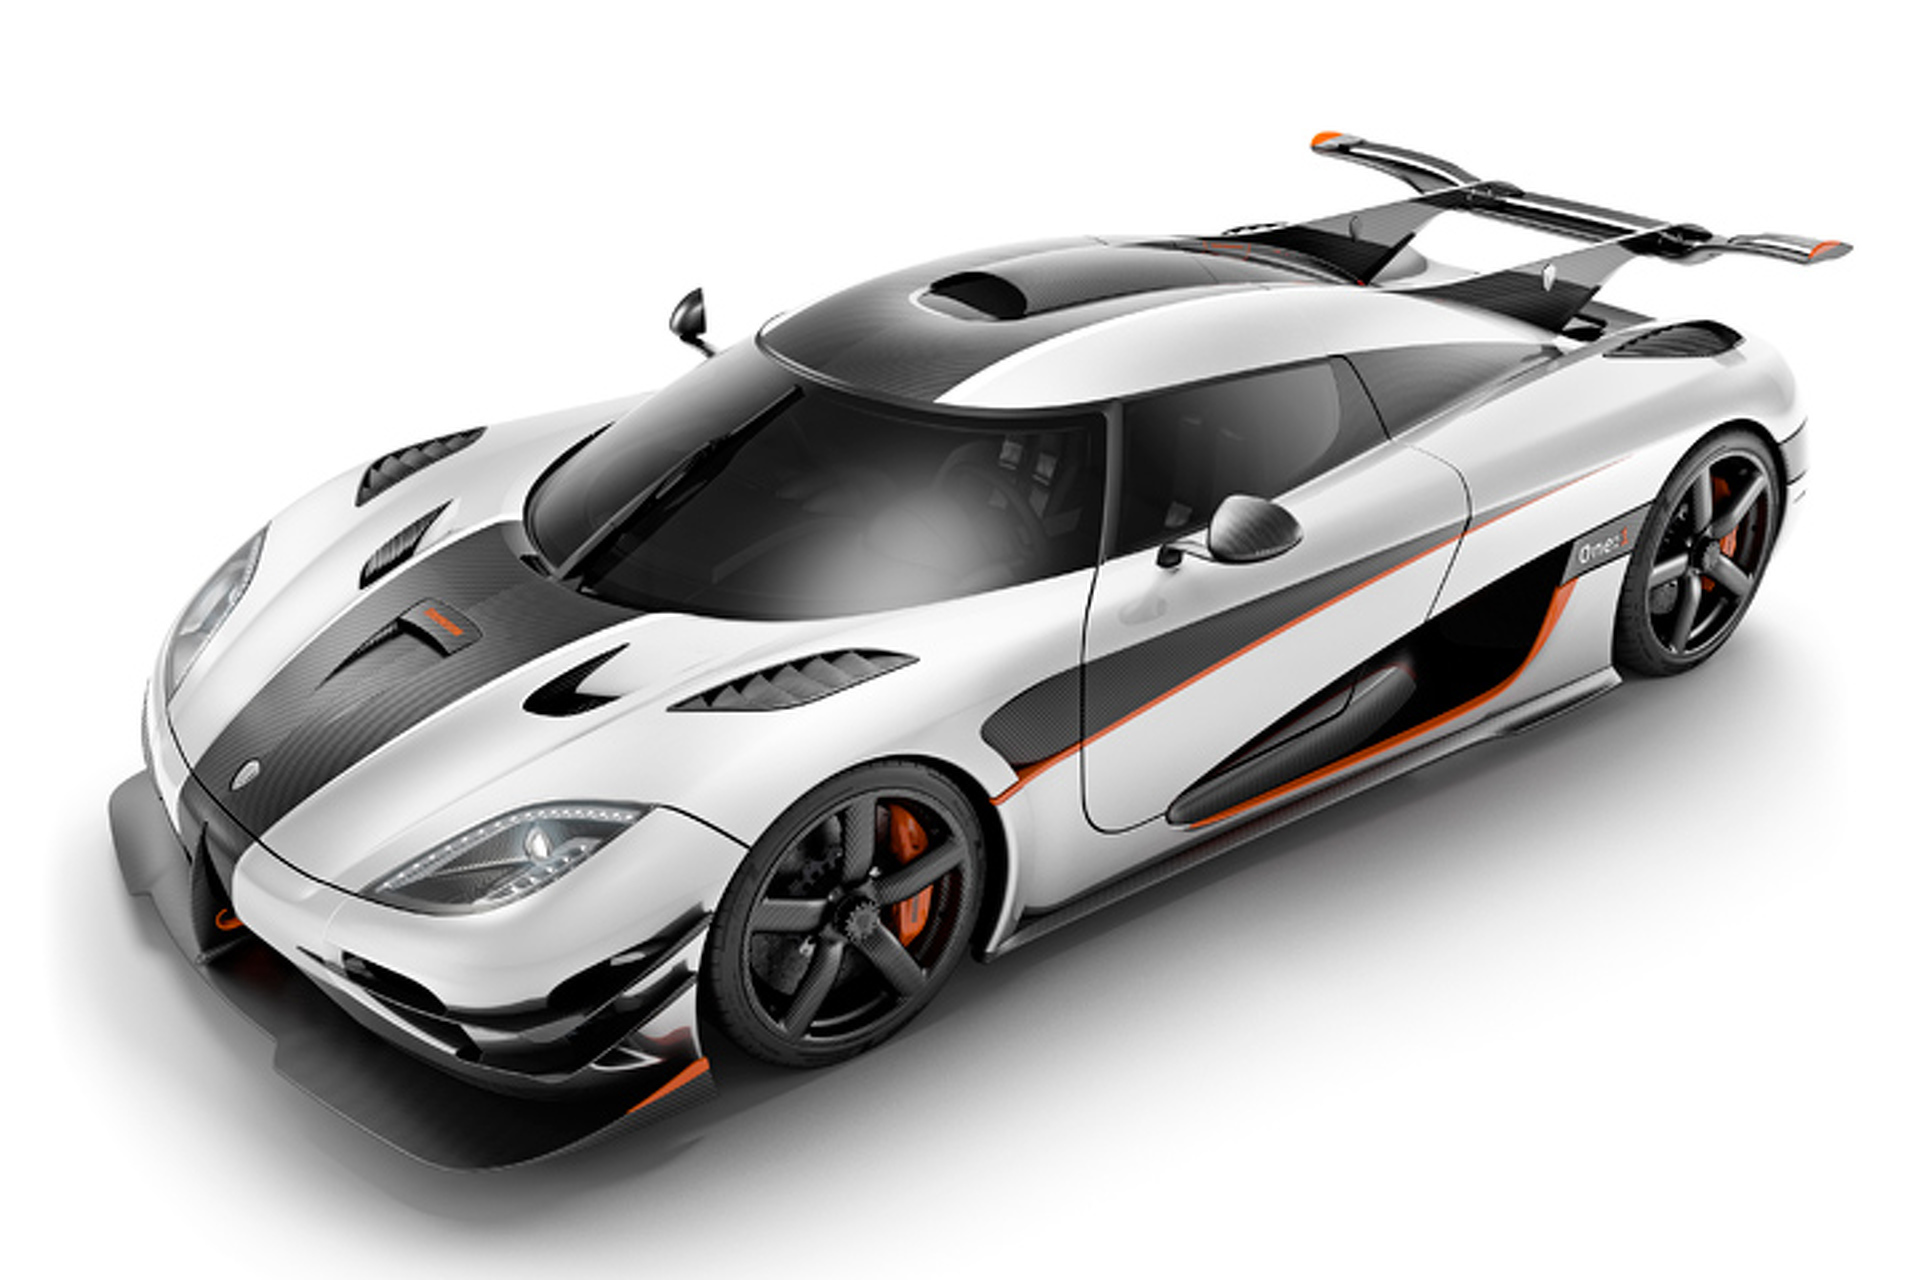 5-of-the-fastest-cars-on-the-planet Breathtaking Bugatti Veyron Vs Koenigsegg Ccx Cars Trend